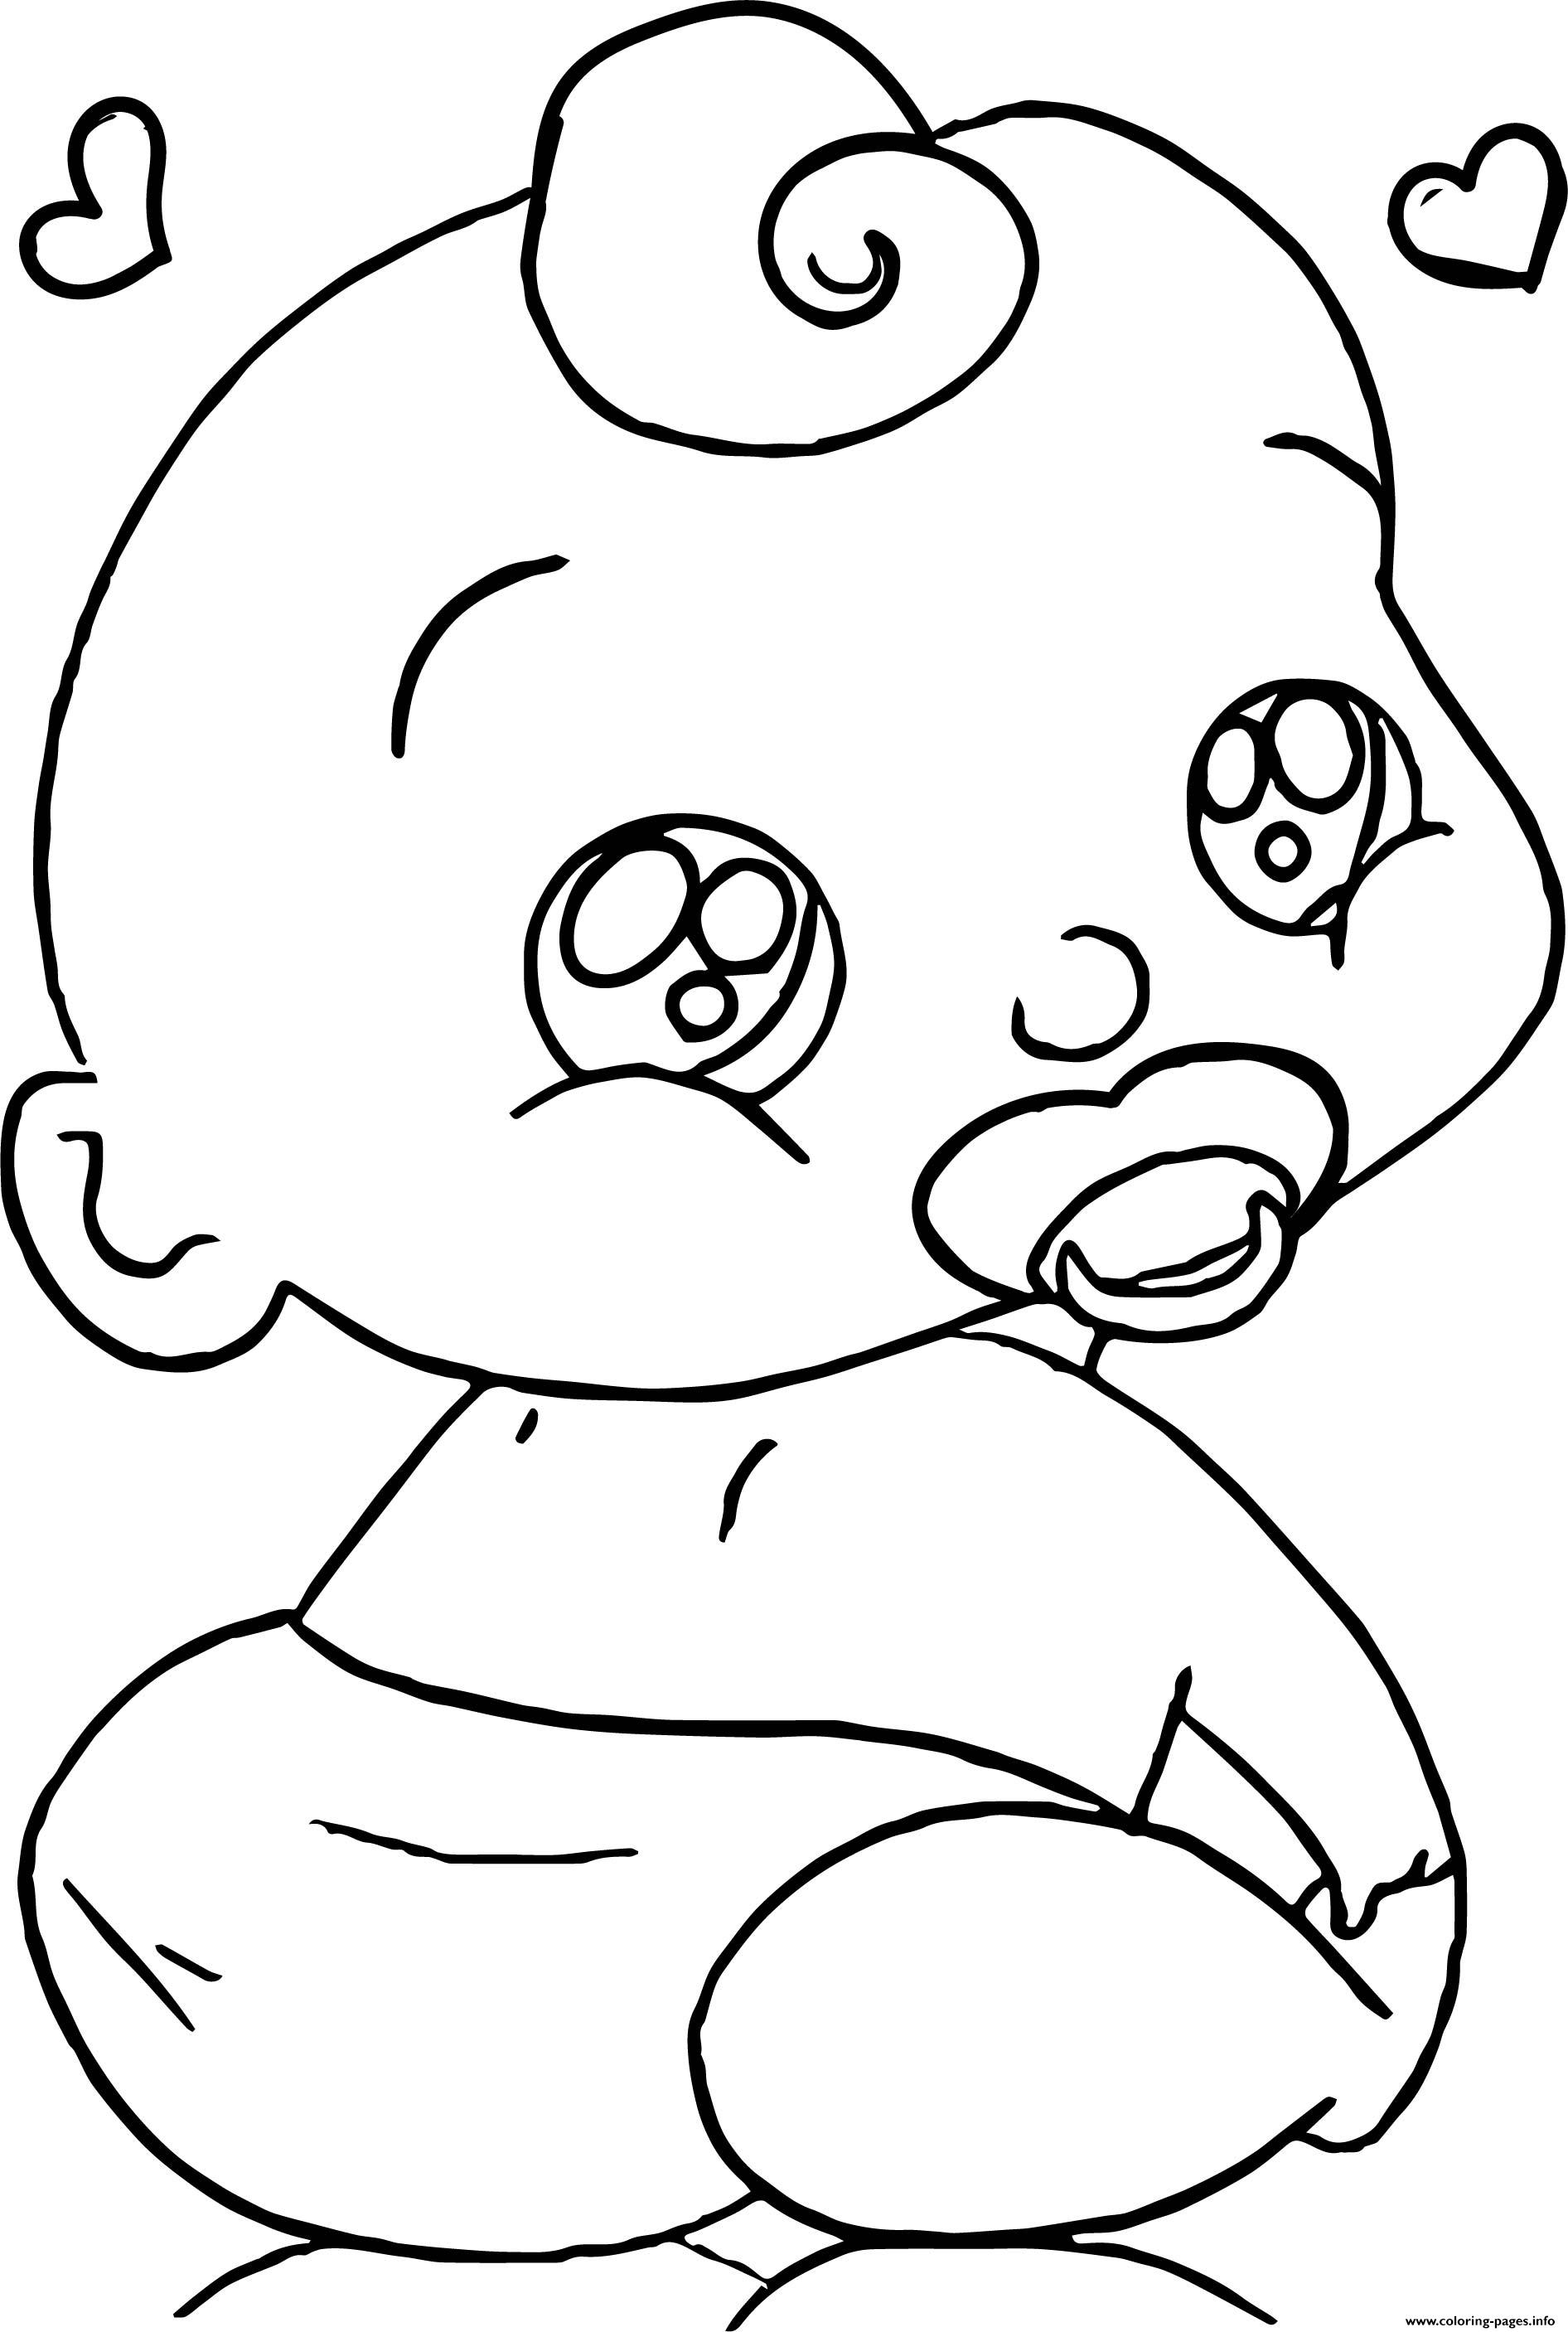 Cute Baby Boy Cartoon Face Coloring Pages Printable